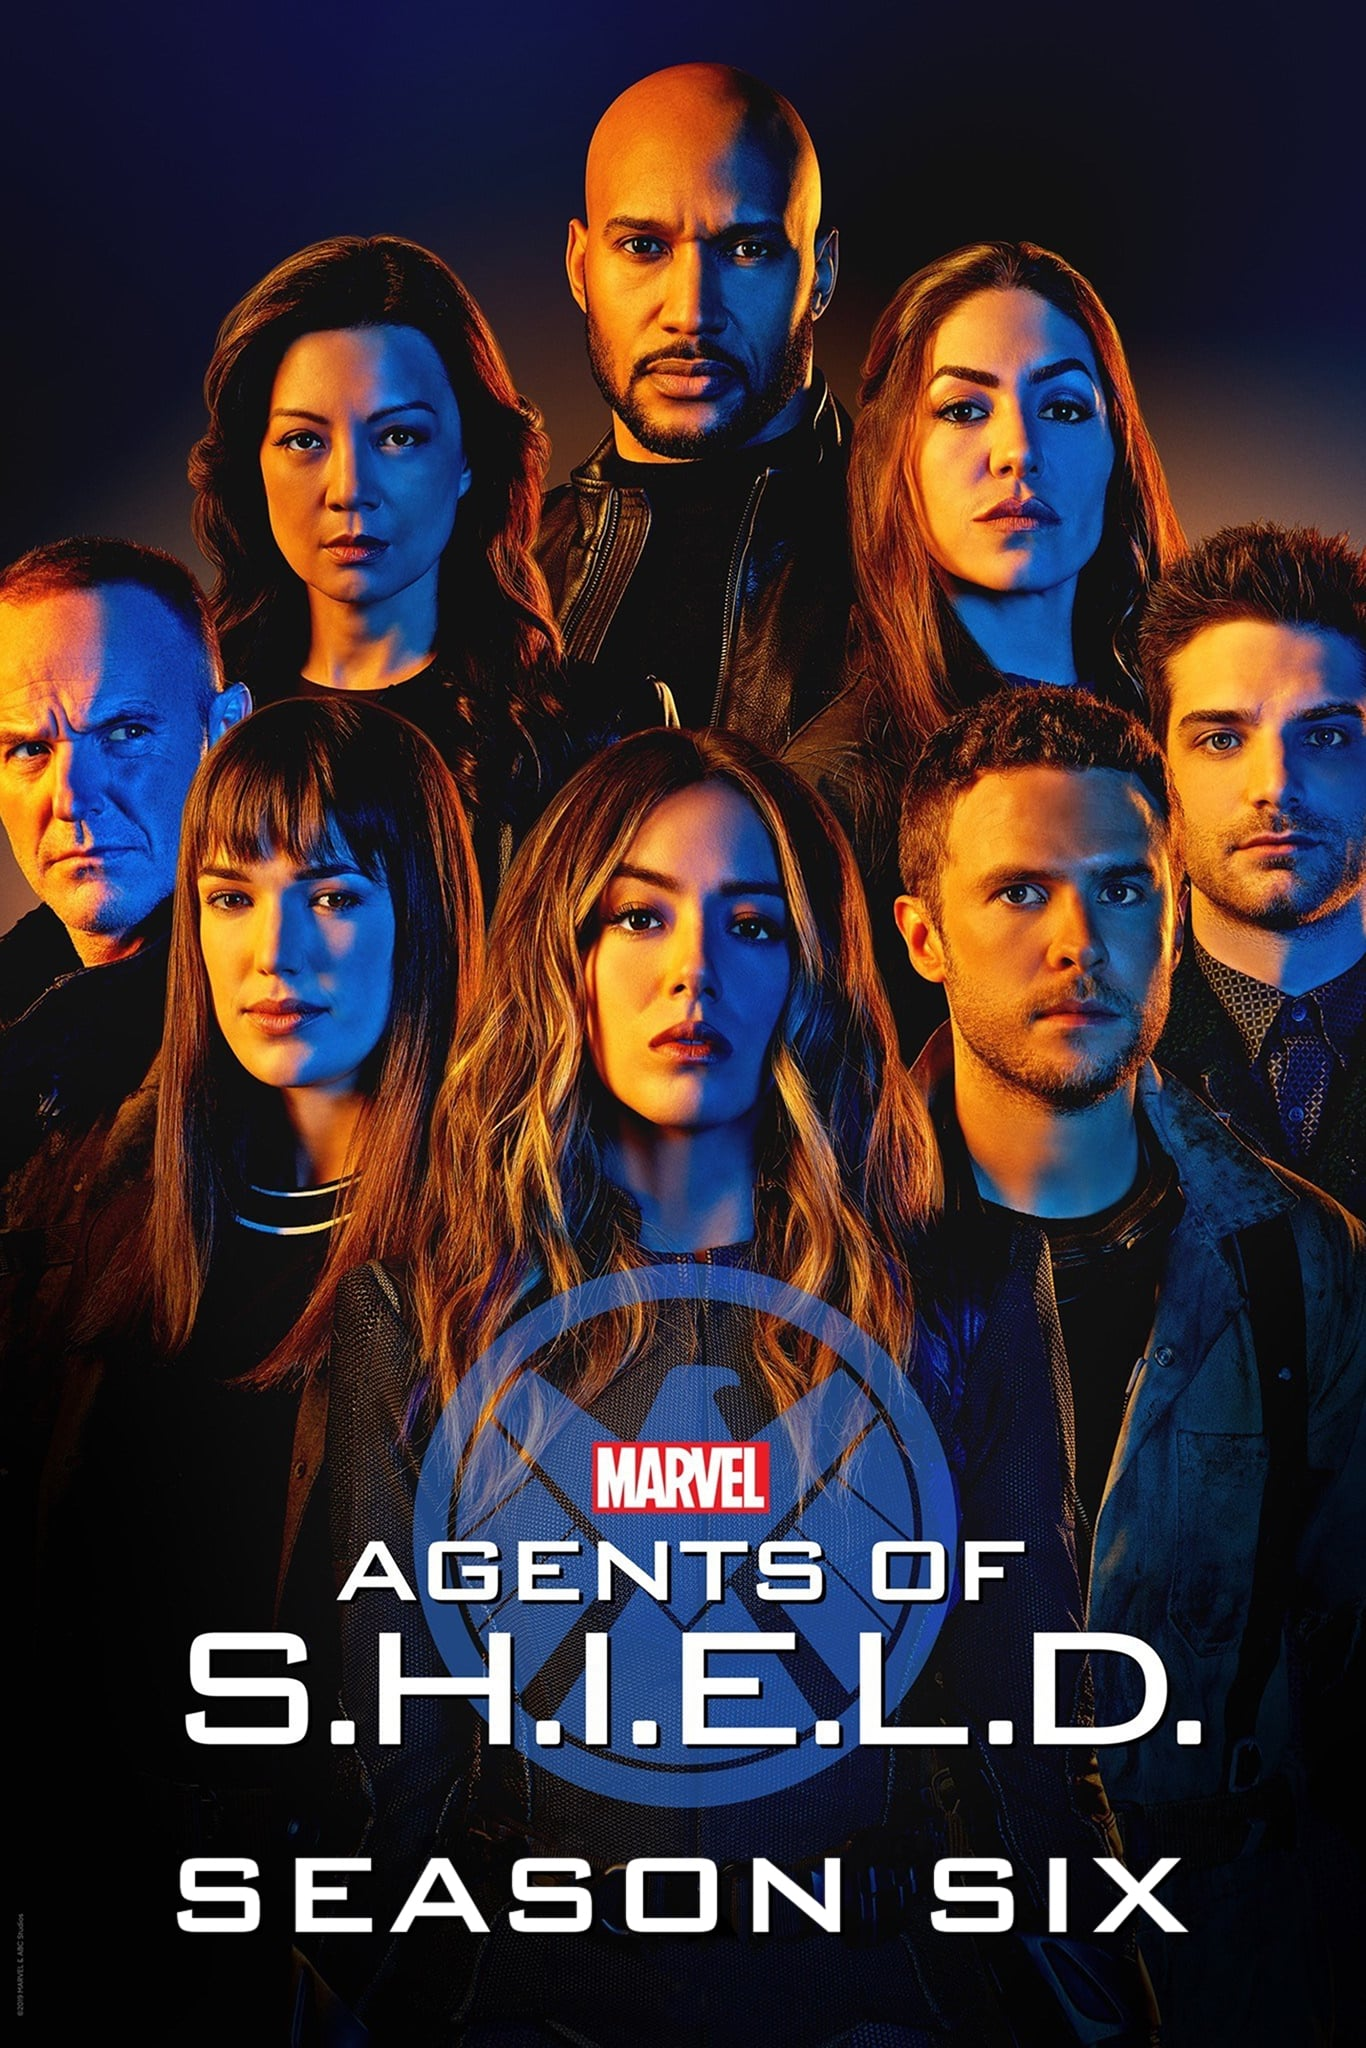 Marvel's Agents of S.H.I.E.L.D. Season 6